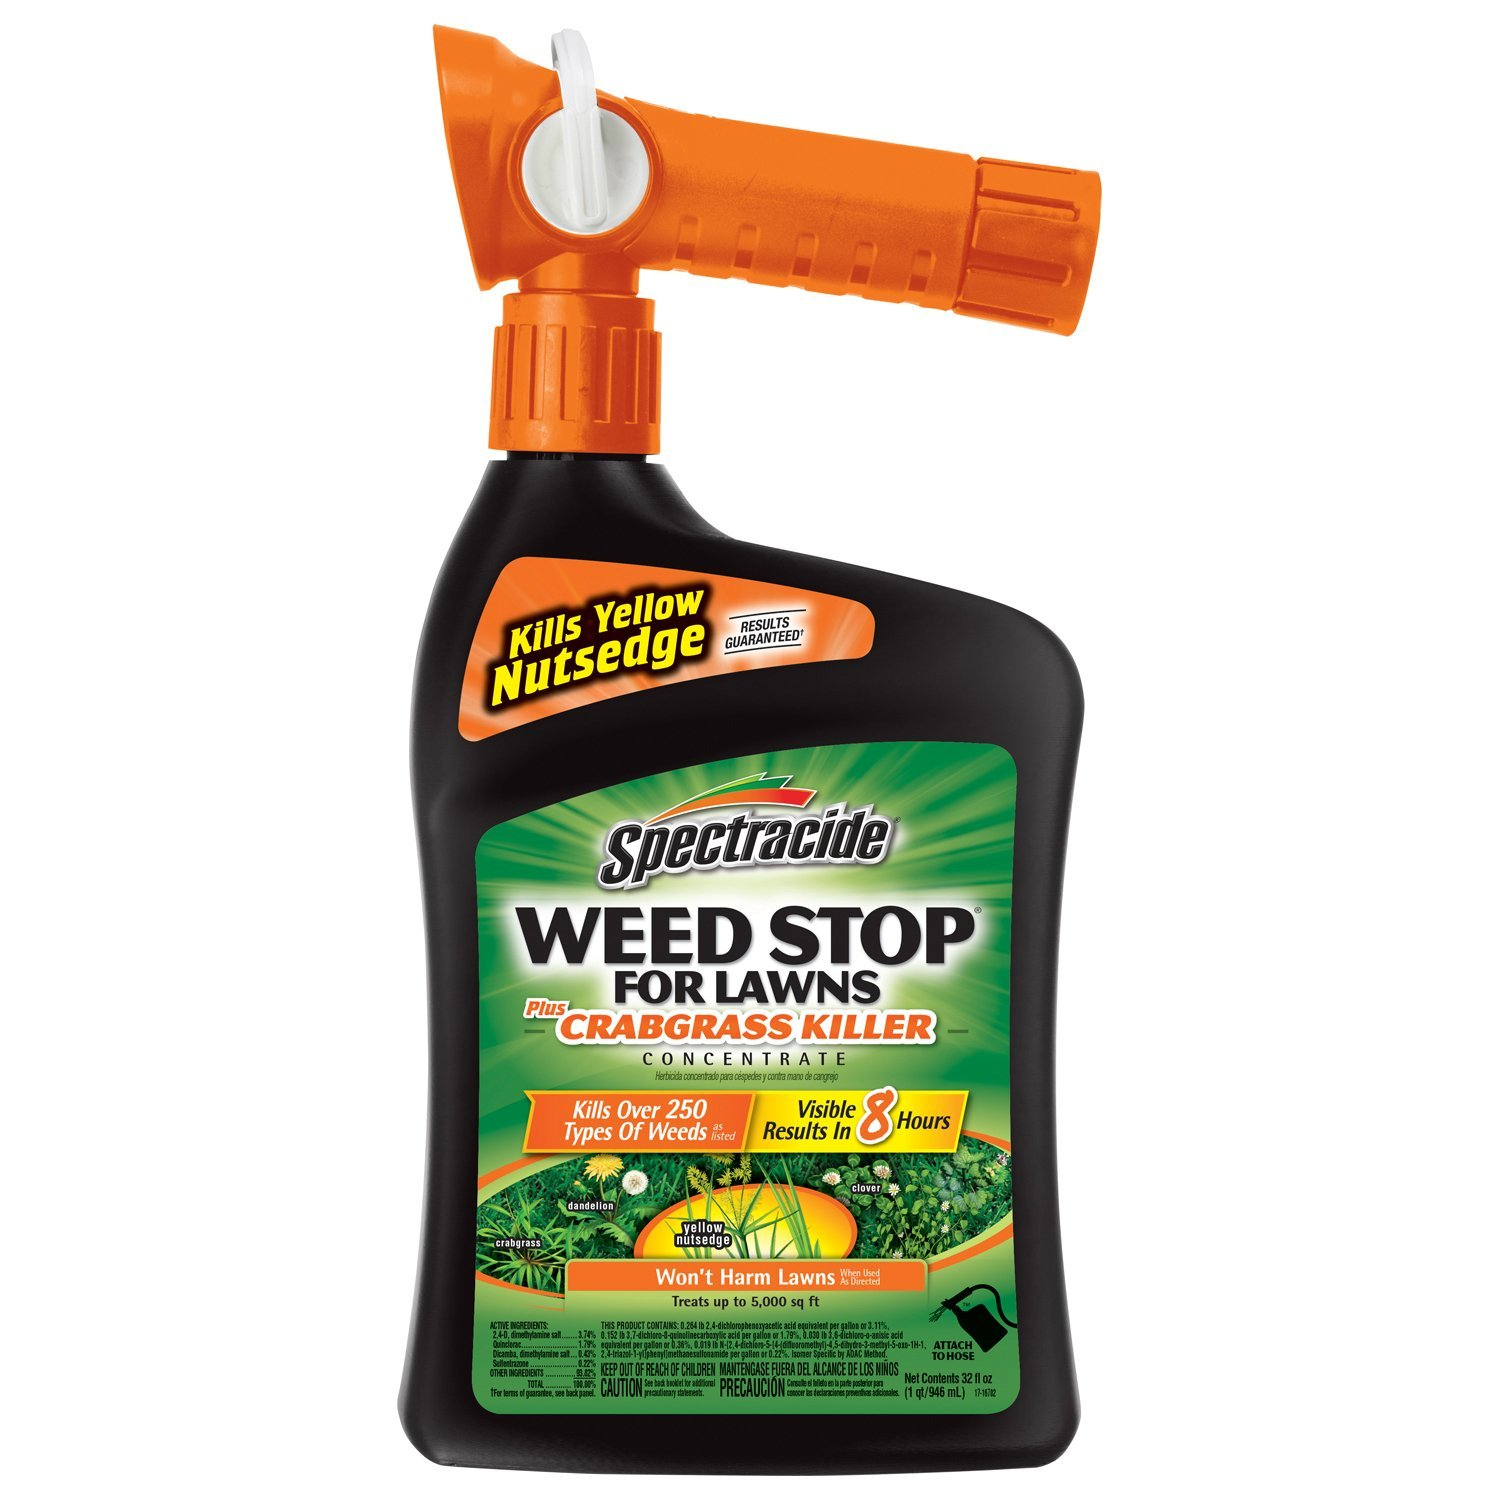 Spectracide Weed Stop For Lawns + Crabgrass RTS Concentrate